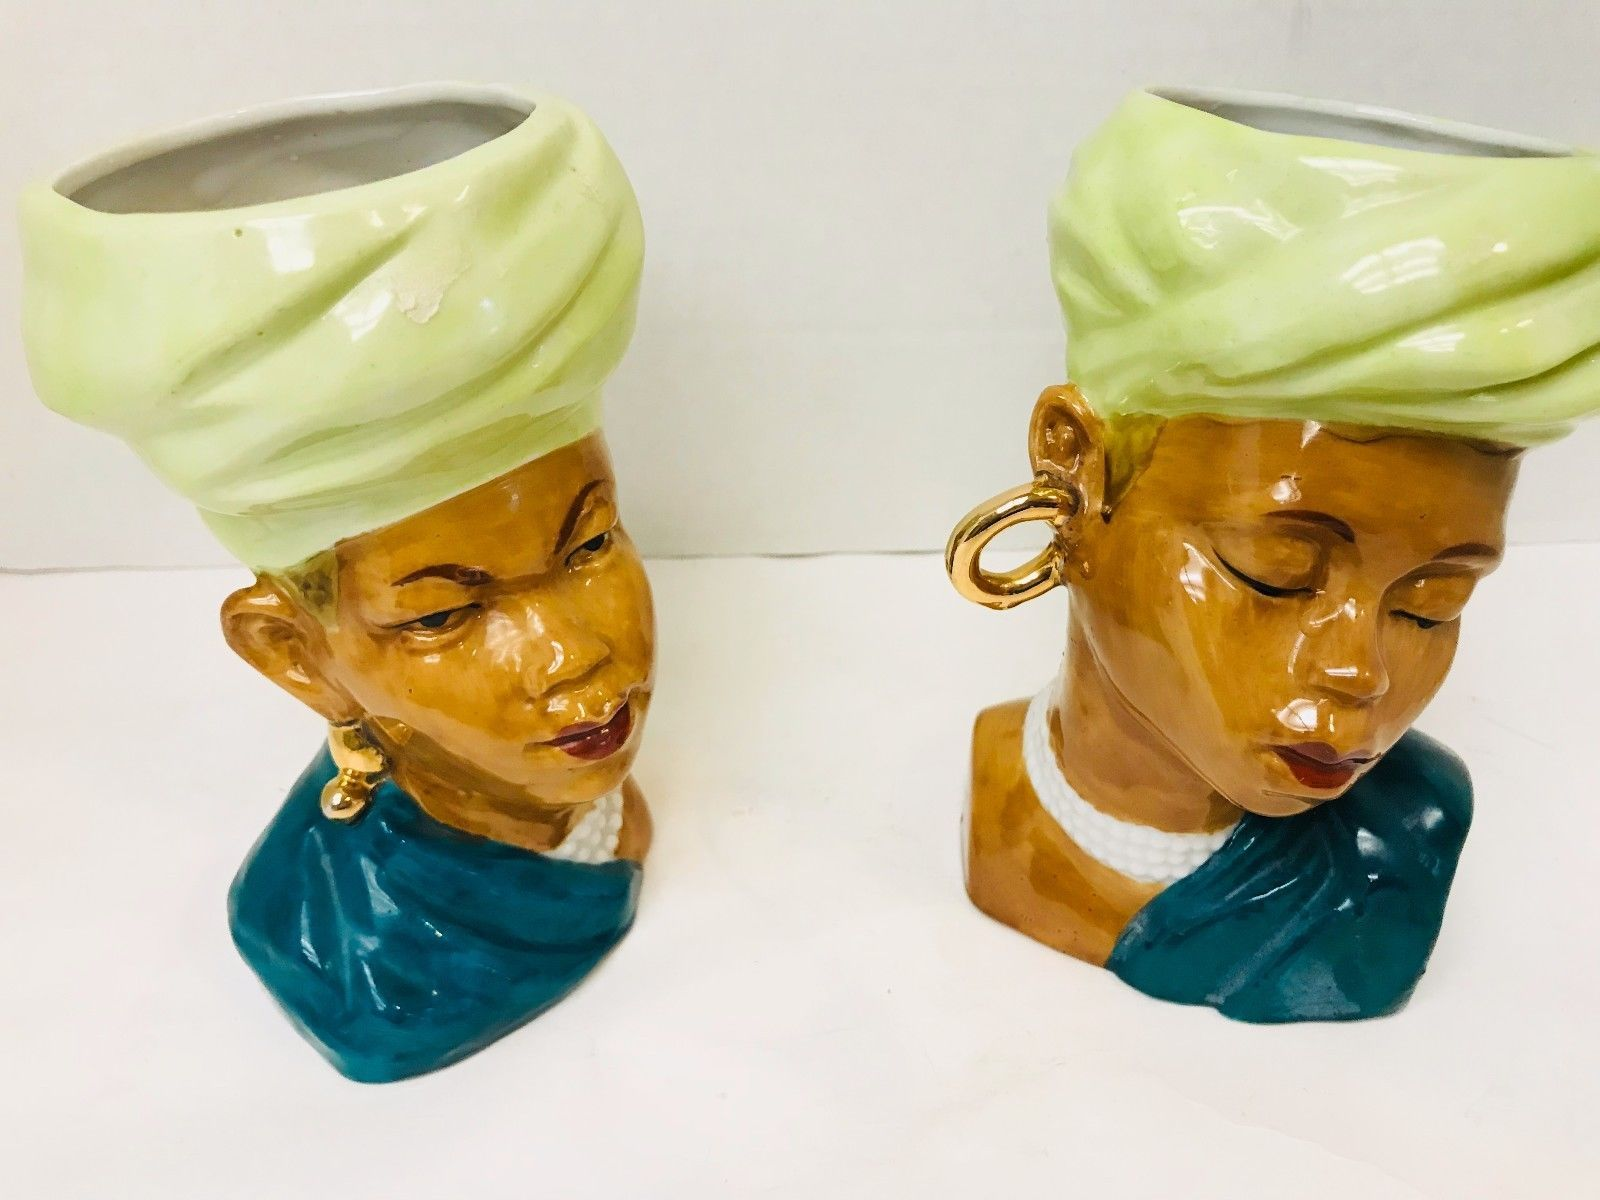 Primary image for Ethnic Women and Man Bust Heads Large Gold Earrings Made in Japan 6 X 3 X  31/2